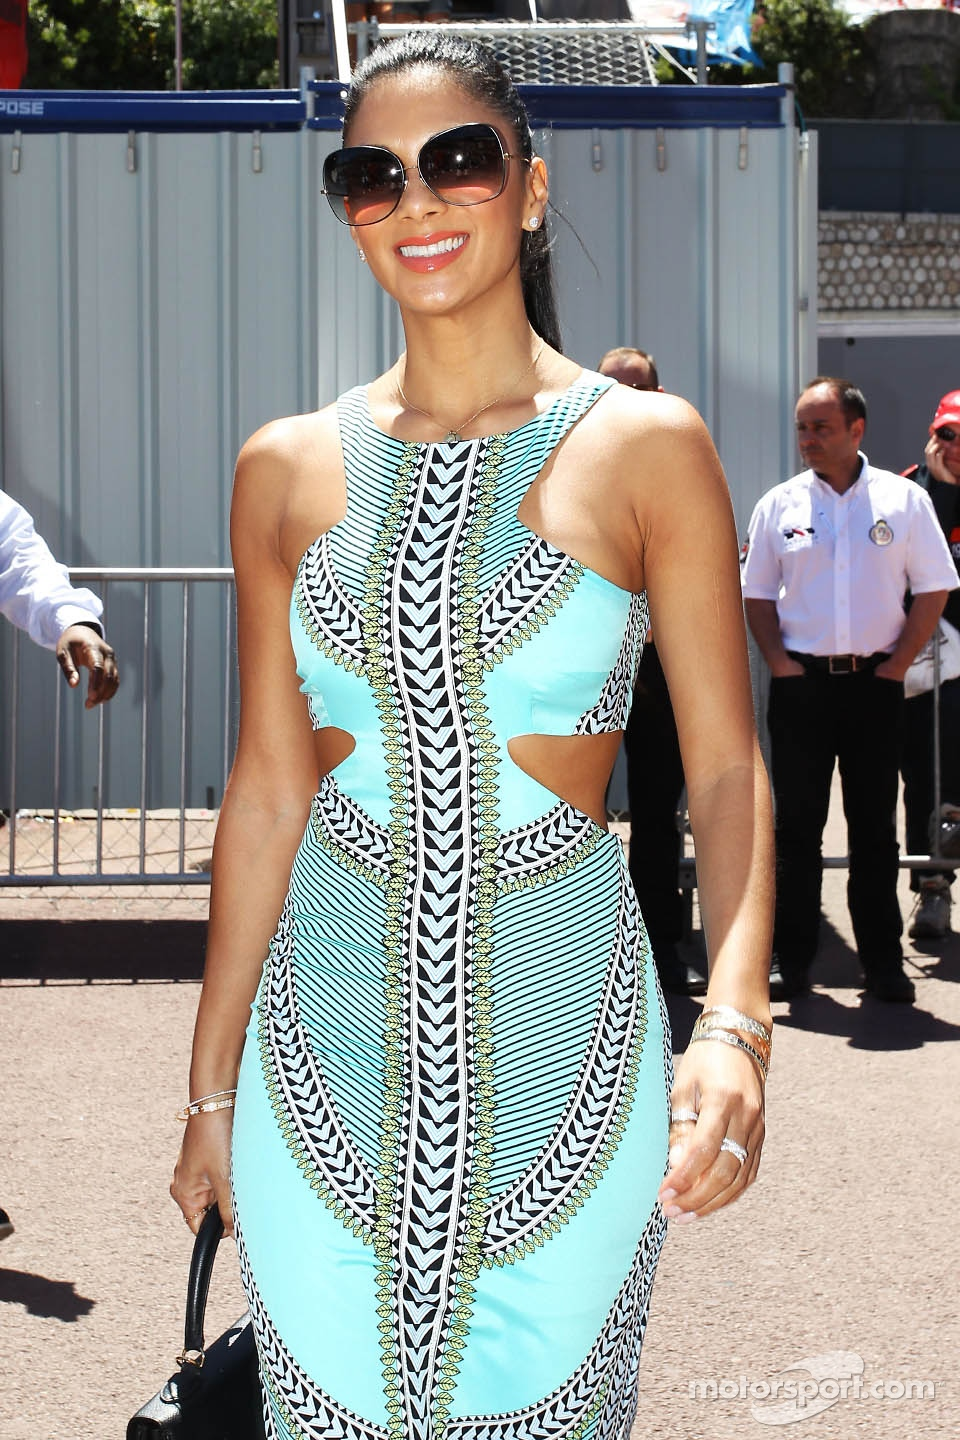 Nicole Scherzinger, Singer, girlfriend of Lewis Hamilton, Mercedes AMG F1